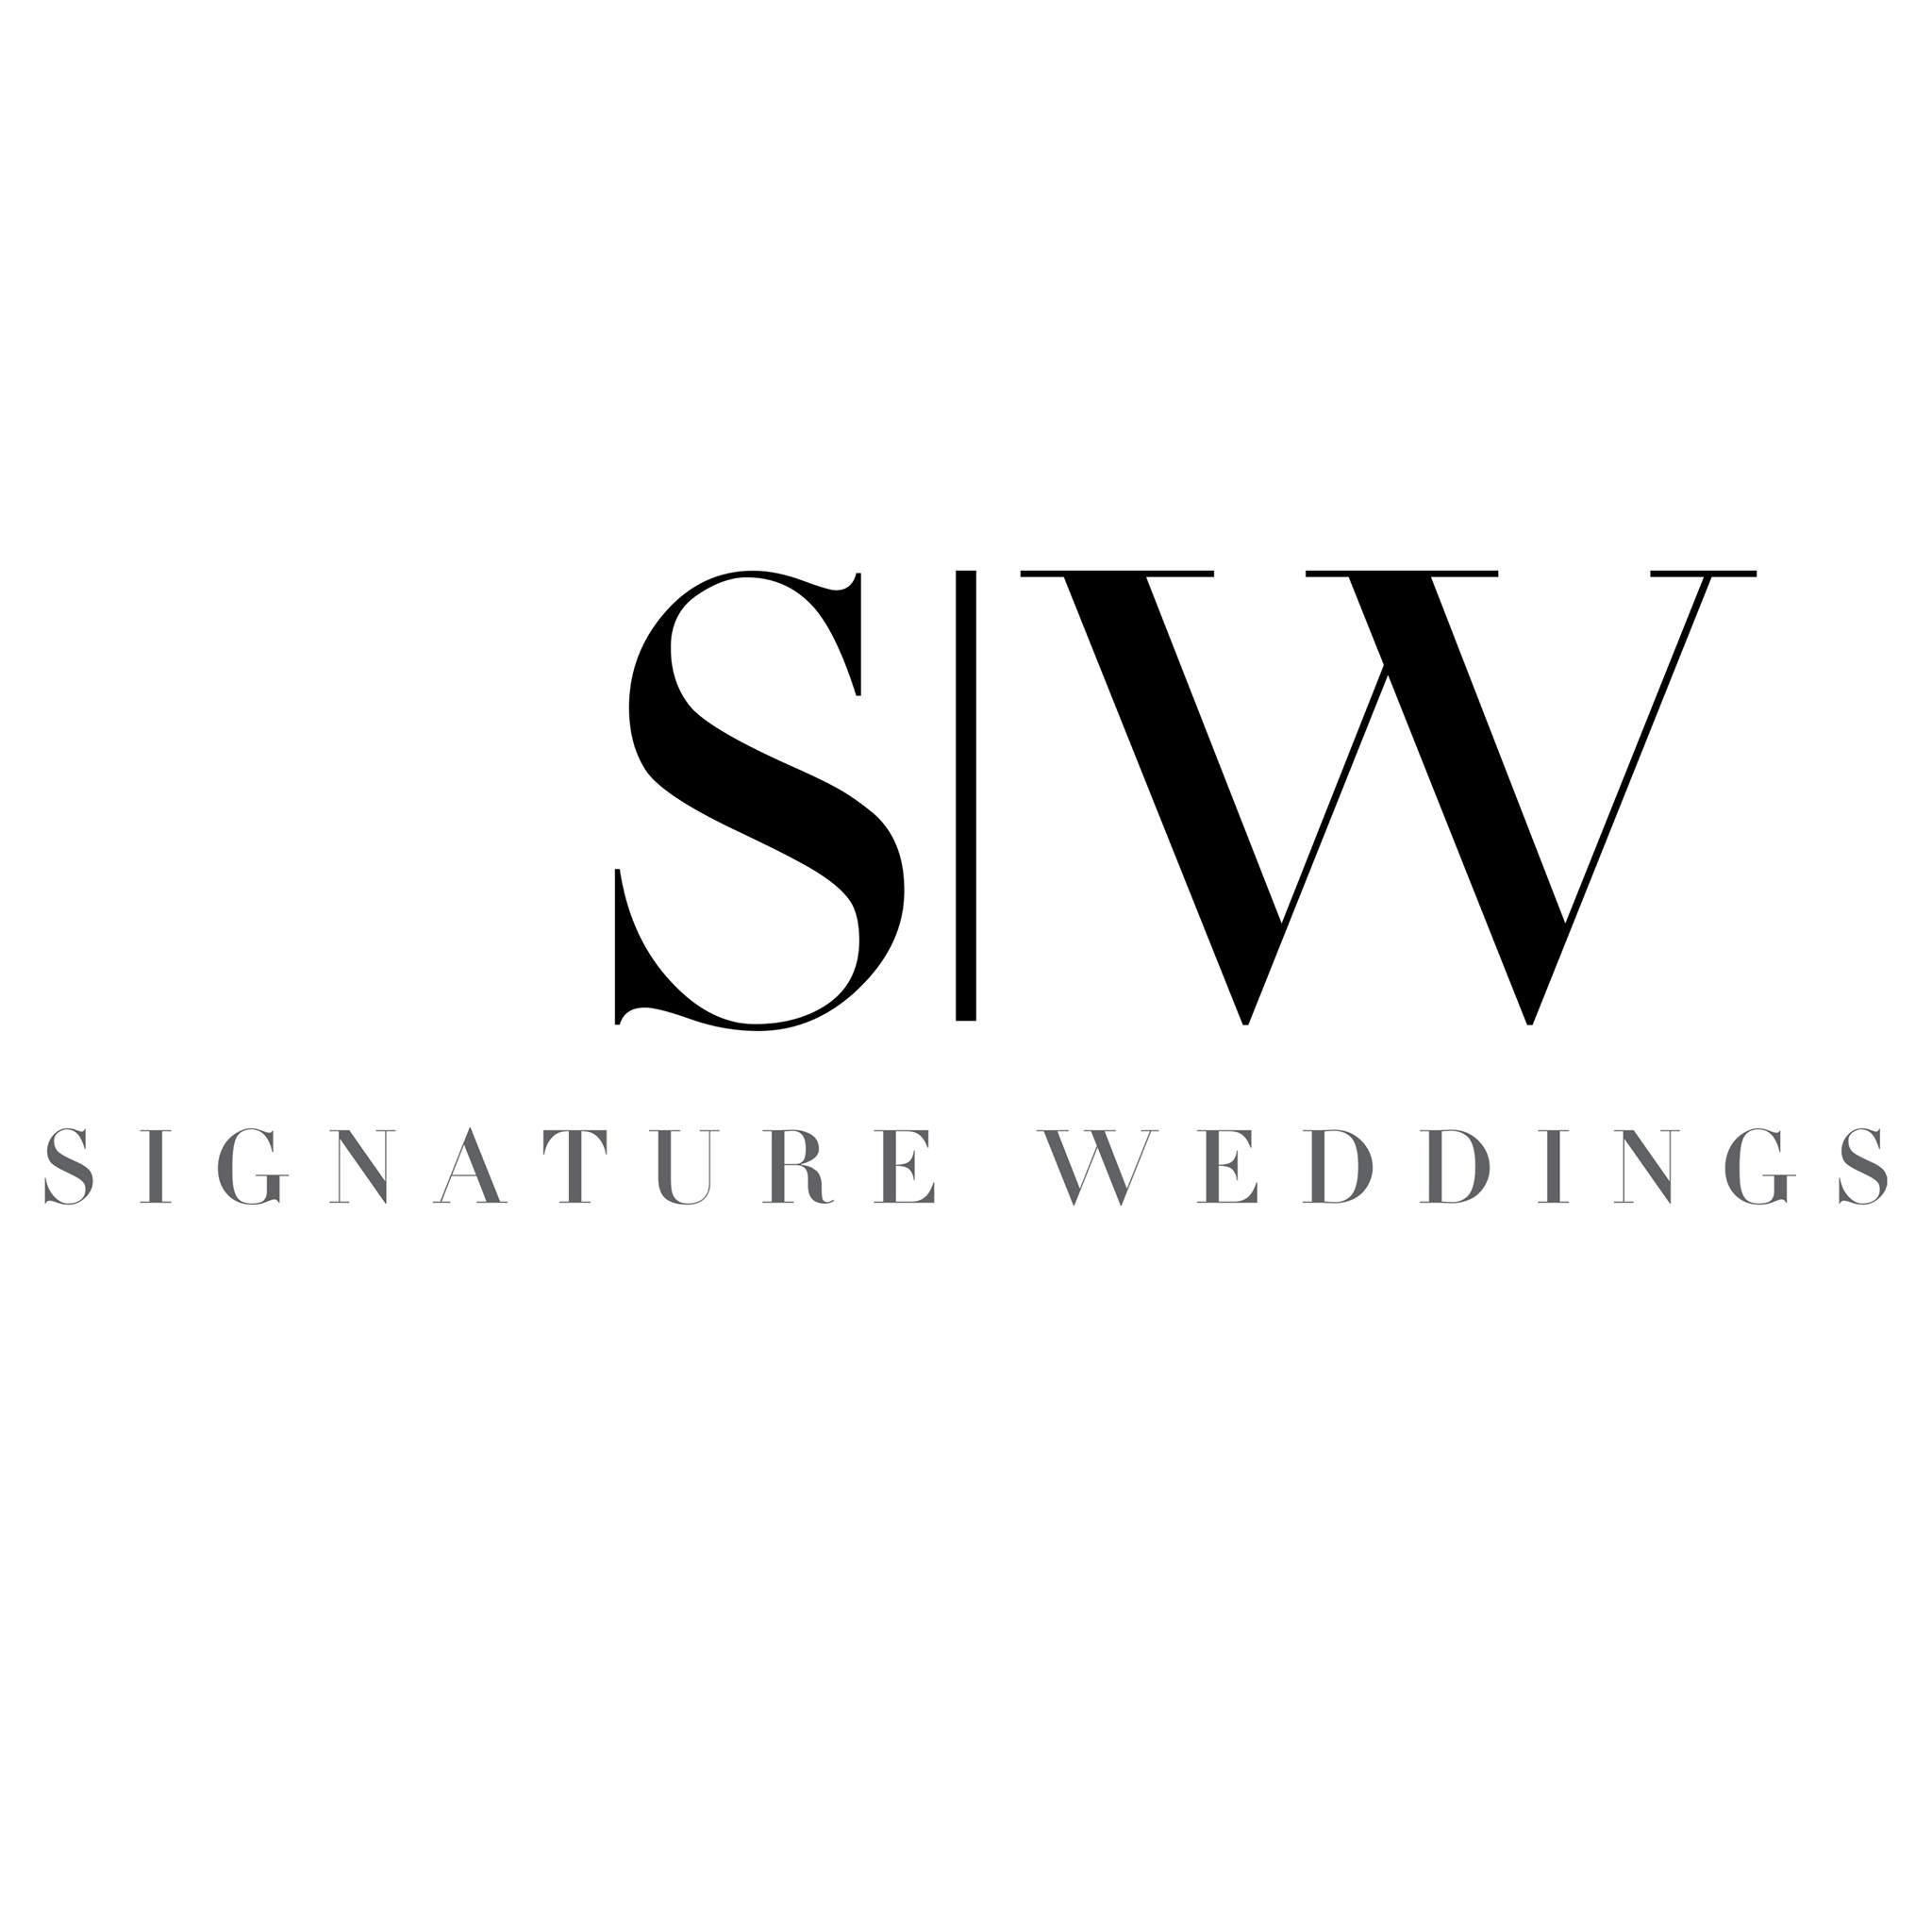 Signature Weddings   Here at Signature Weddings, the finest wedding content and lifestyle ideas are deliberately curated for you. From Asia and spanning across the globe, be inspired by elegant & stylish wedding celebrations delivered in the hands of brilliant wedding creator.